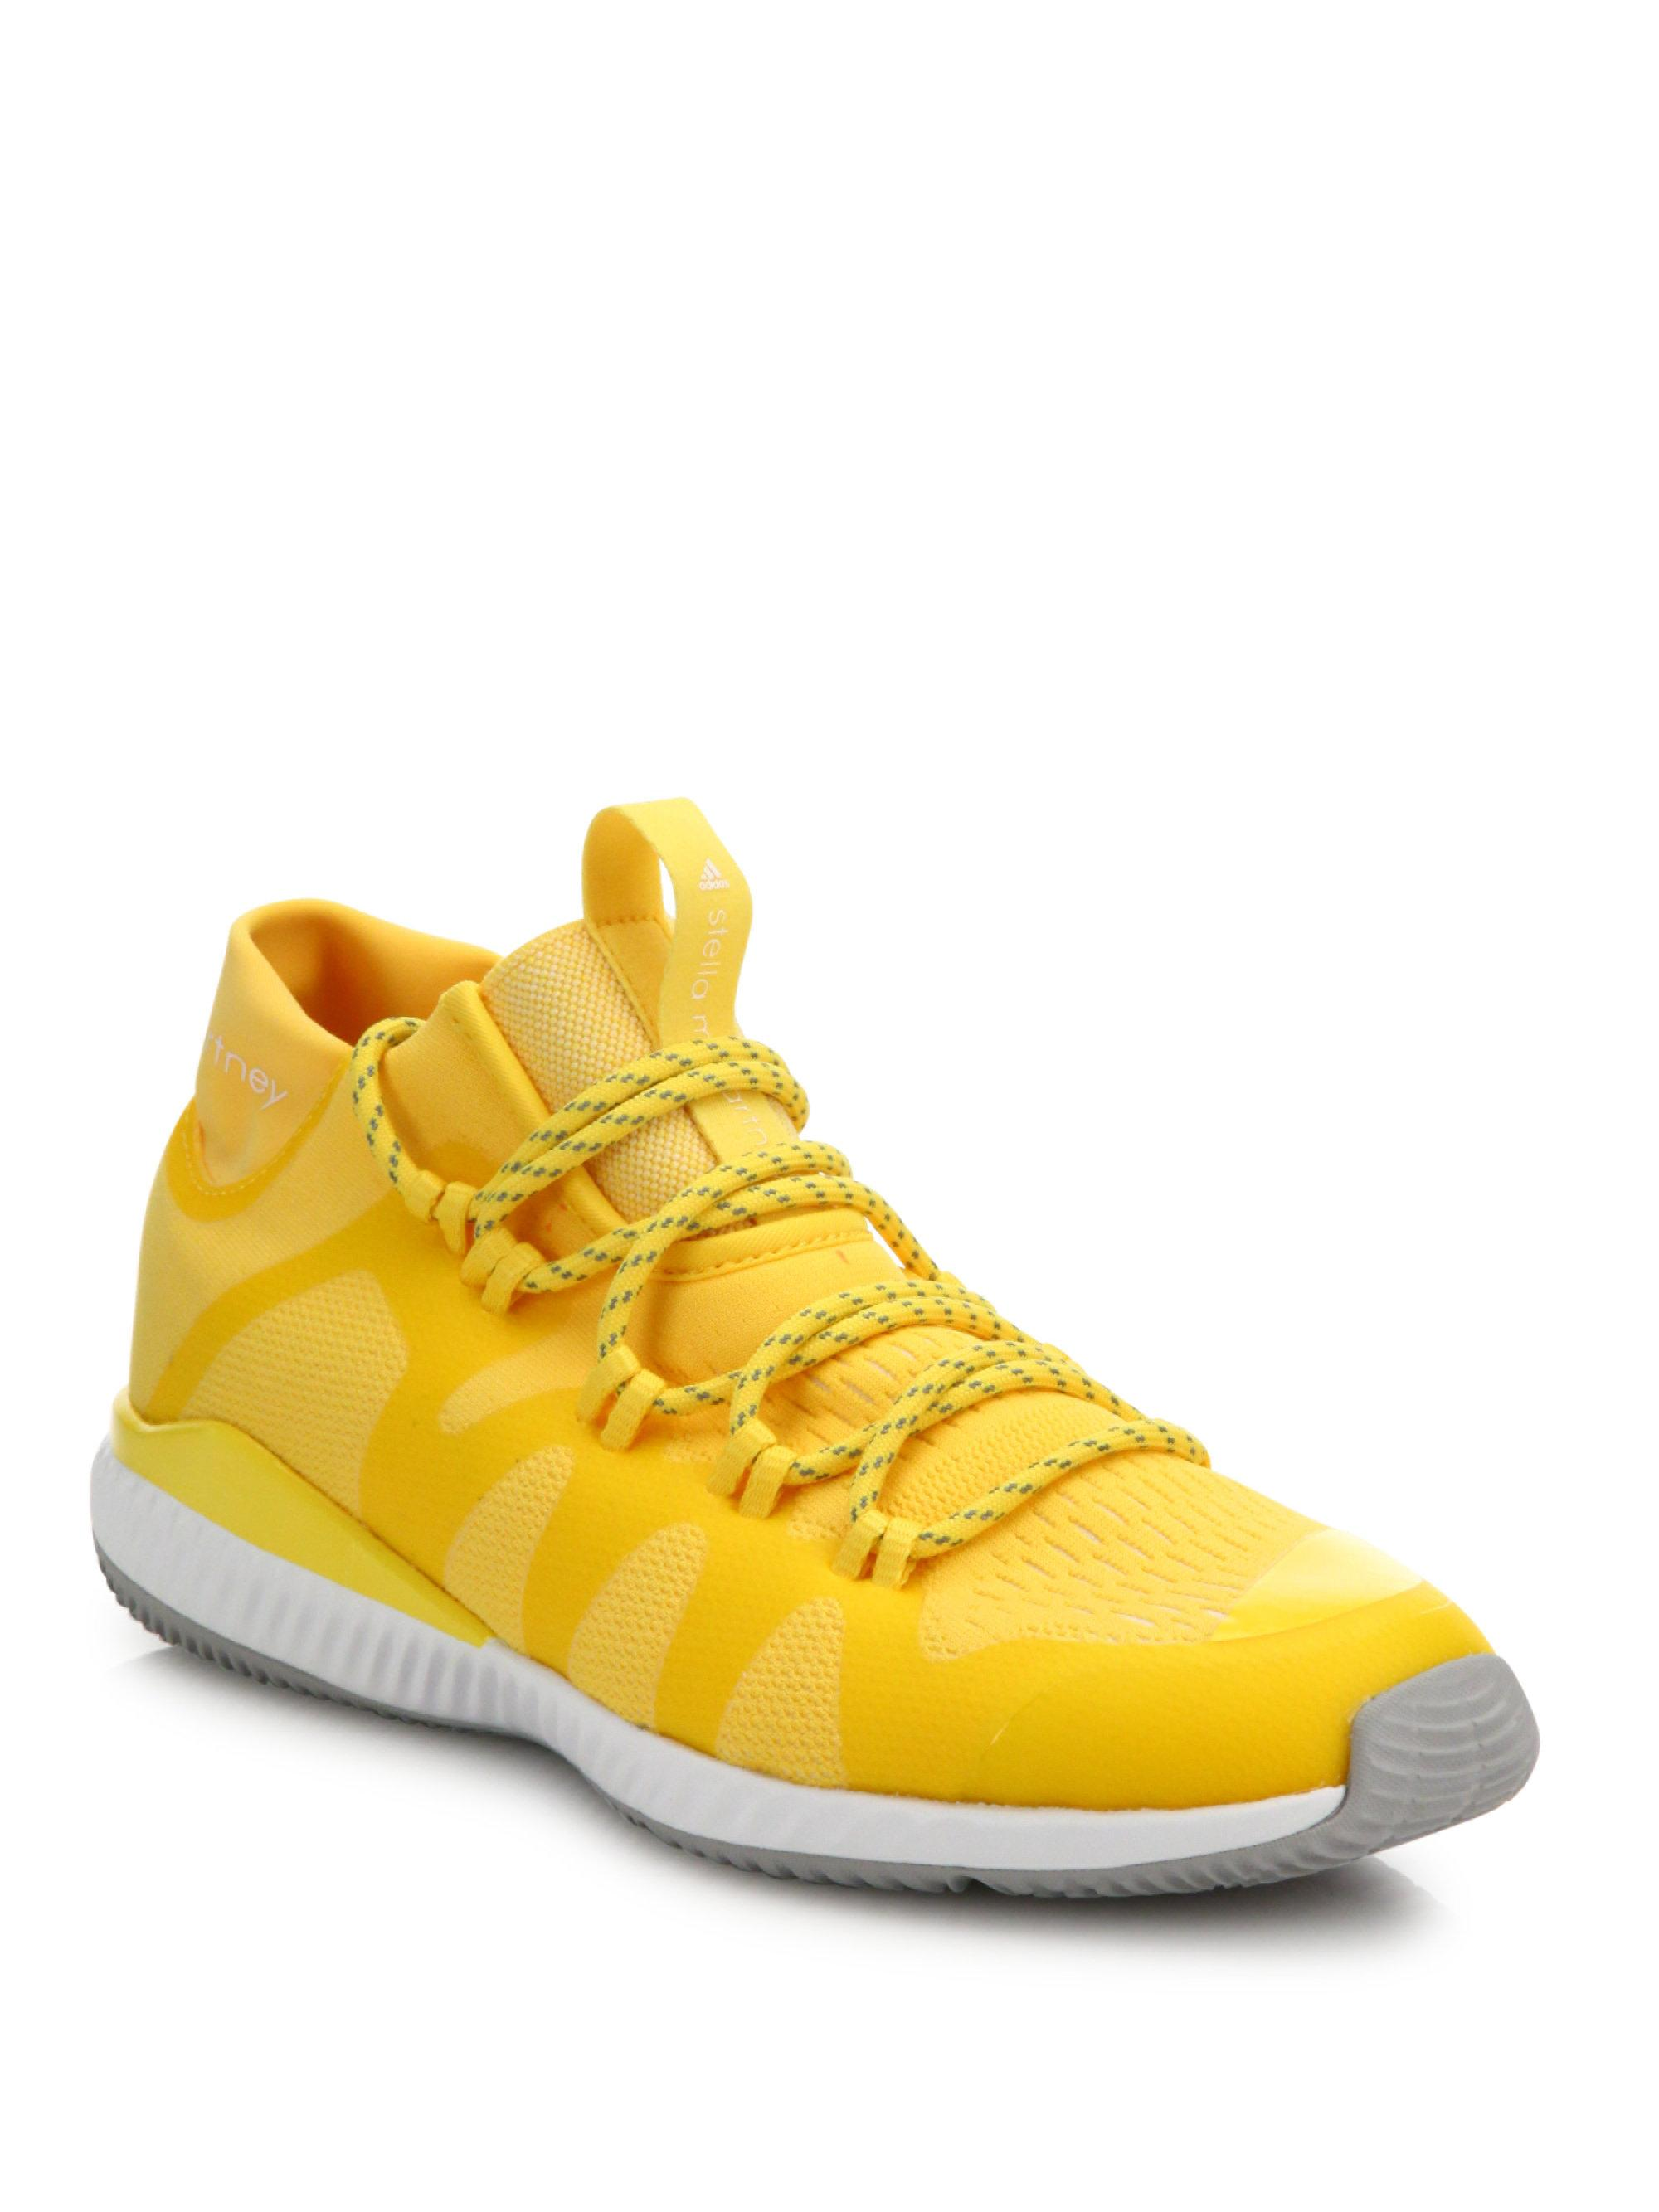 55f3a5254 Lyst - adidas By Stella McCartney Crazymove Bounce Mid-top Trainer ...